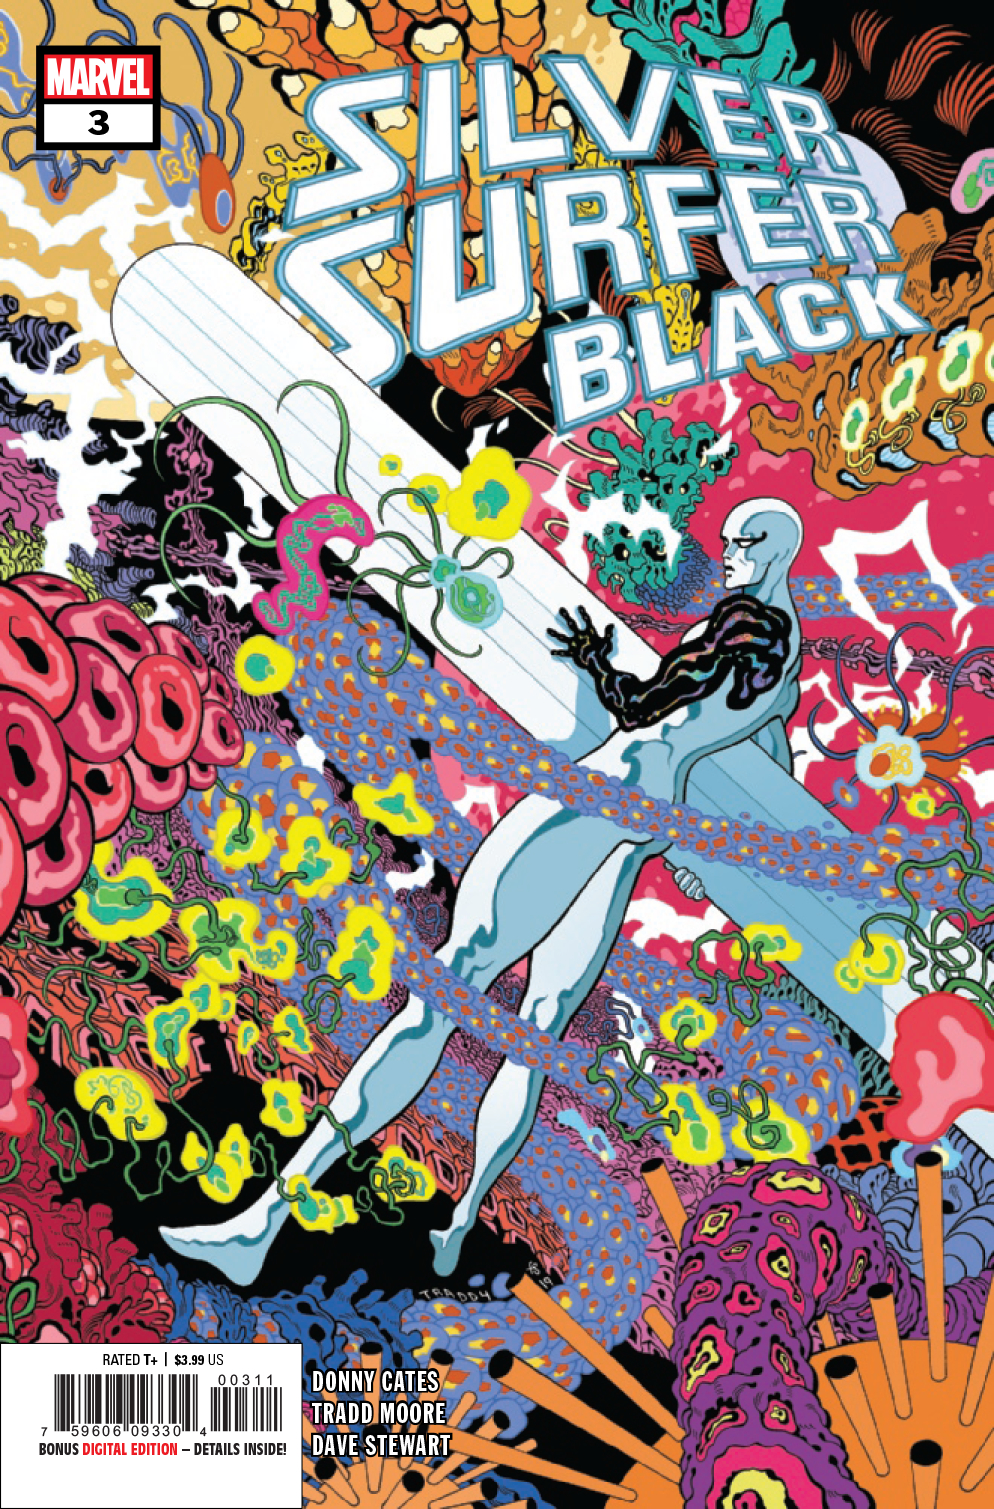 SILVER SURFER BLACK #3 (OF 5)